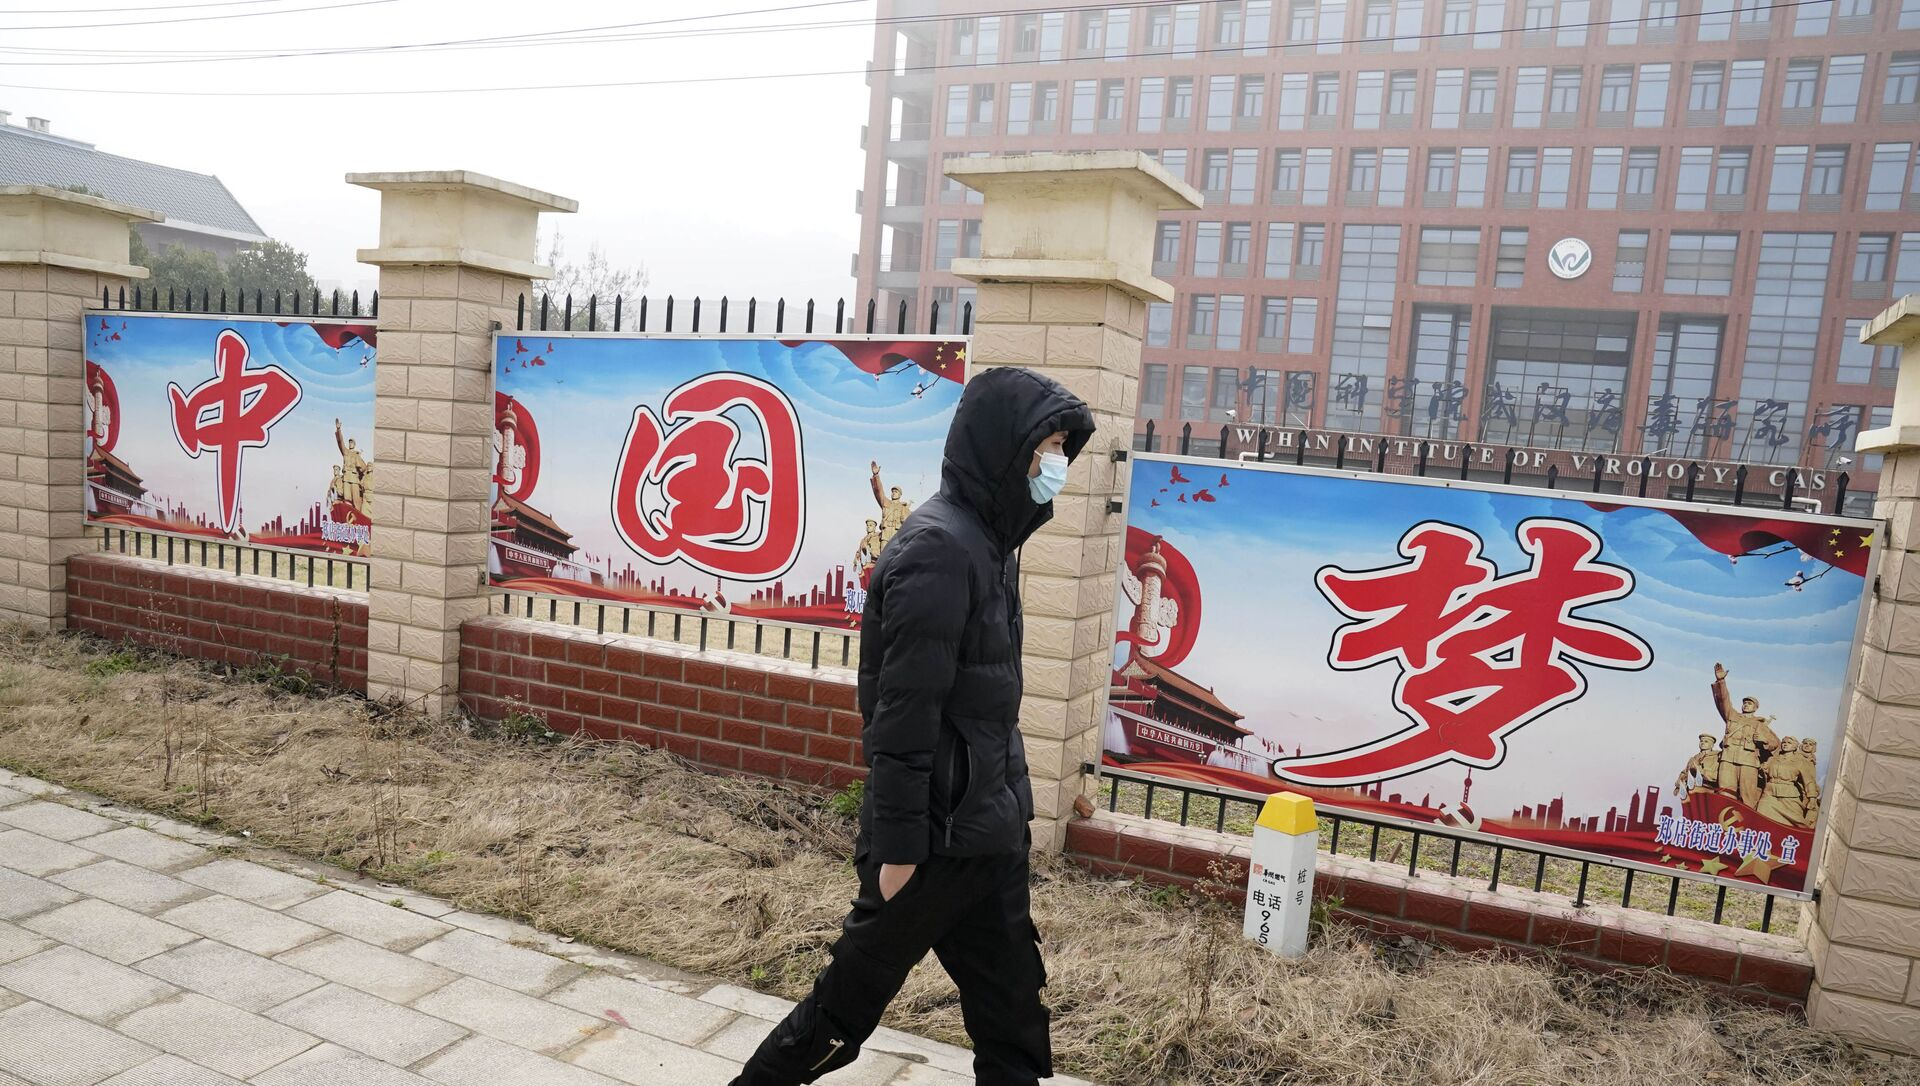 A man passes by the words China Dream outside the entrance to the Wuhan Institute of Virology during a visit by a World Health Organization team in Wuhan in China's Hubei province on Wednesday, Feb. 3, 2021 - Sputnik International, 1920, 03.08.2021